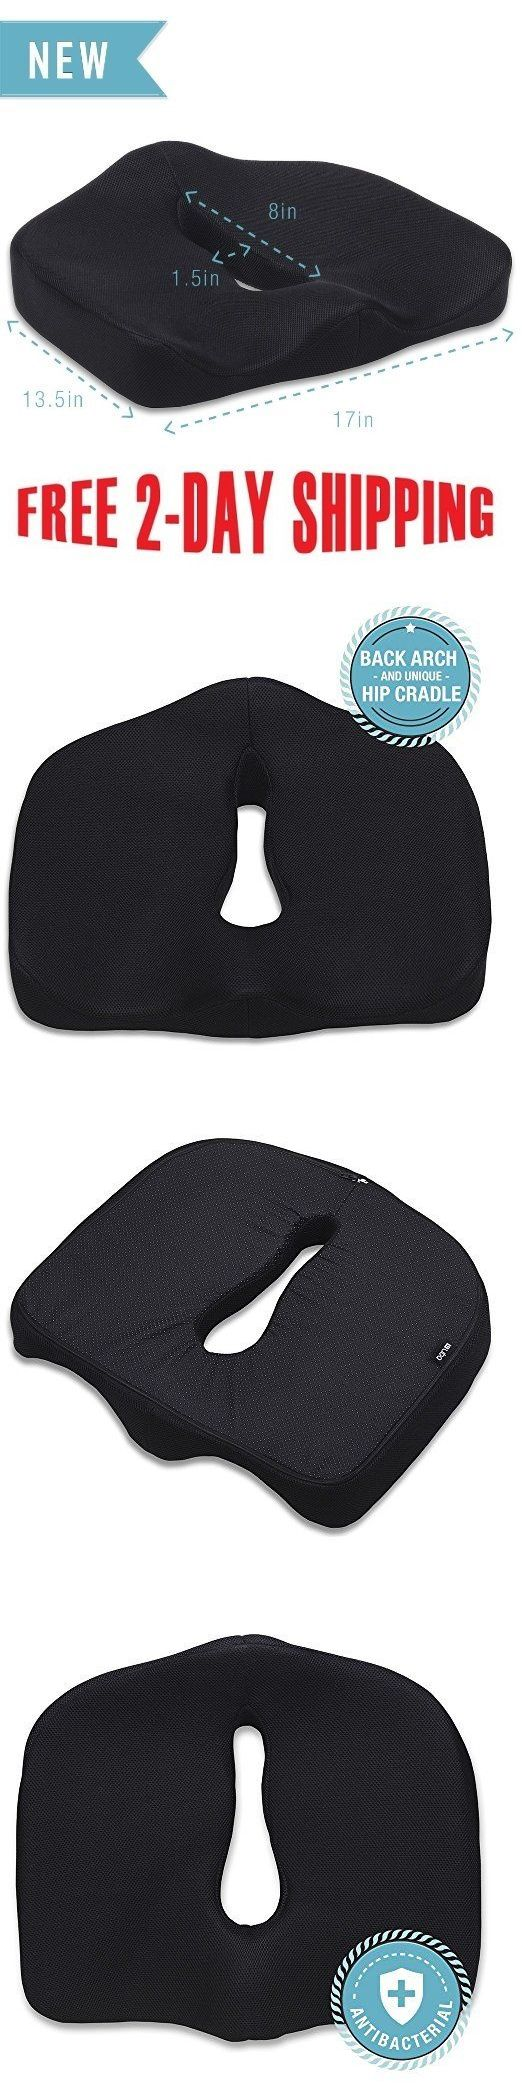 Other Orthopedic Products: Seat Car Chair Seat Cushion Pillow For Sciatica Prostate Hemorrhoid Tailbone New -> BUY IT NOW ONLY: $37.99 on eBay!